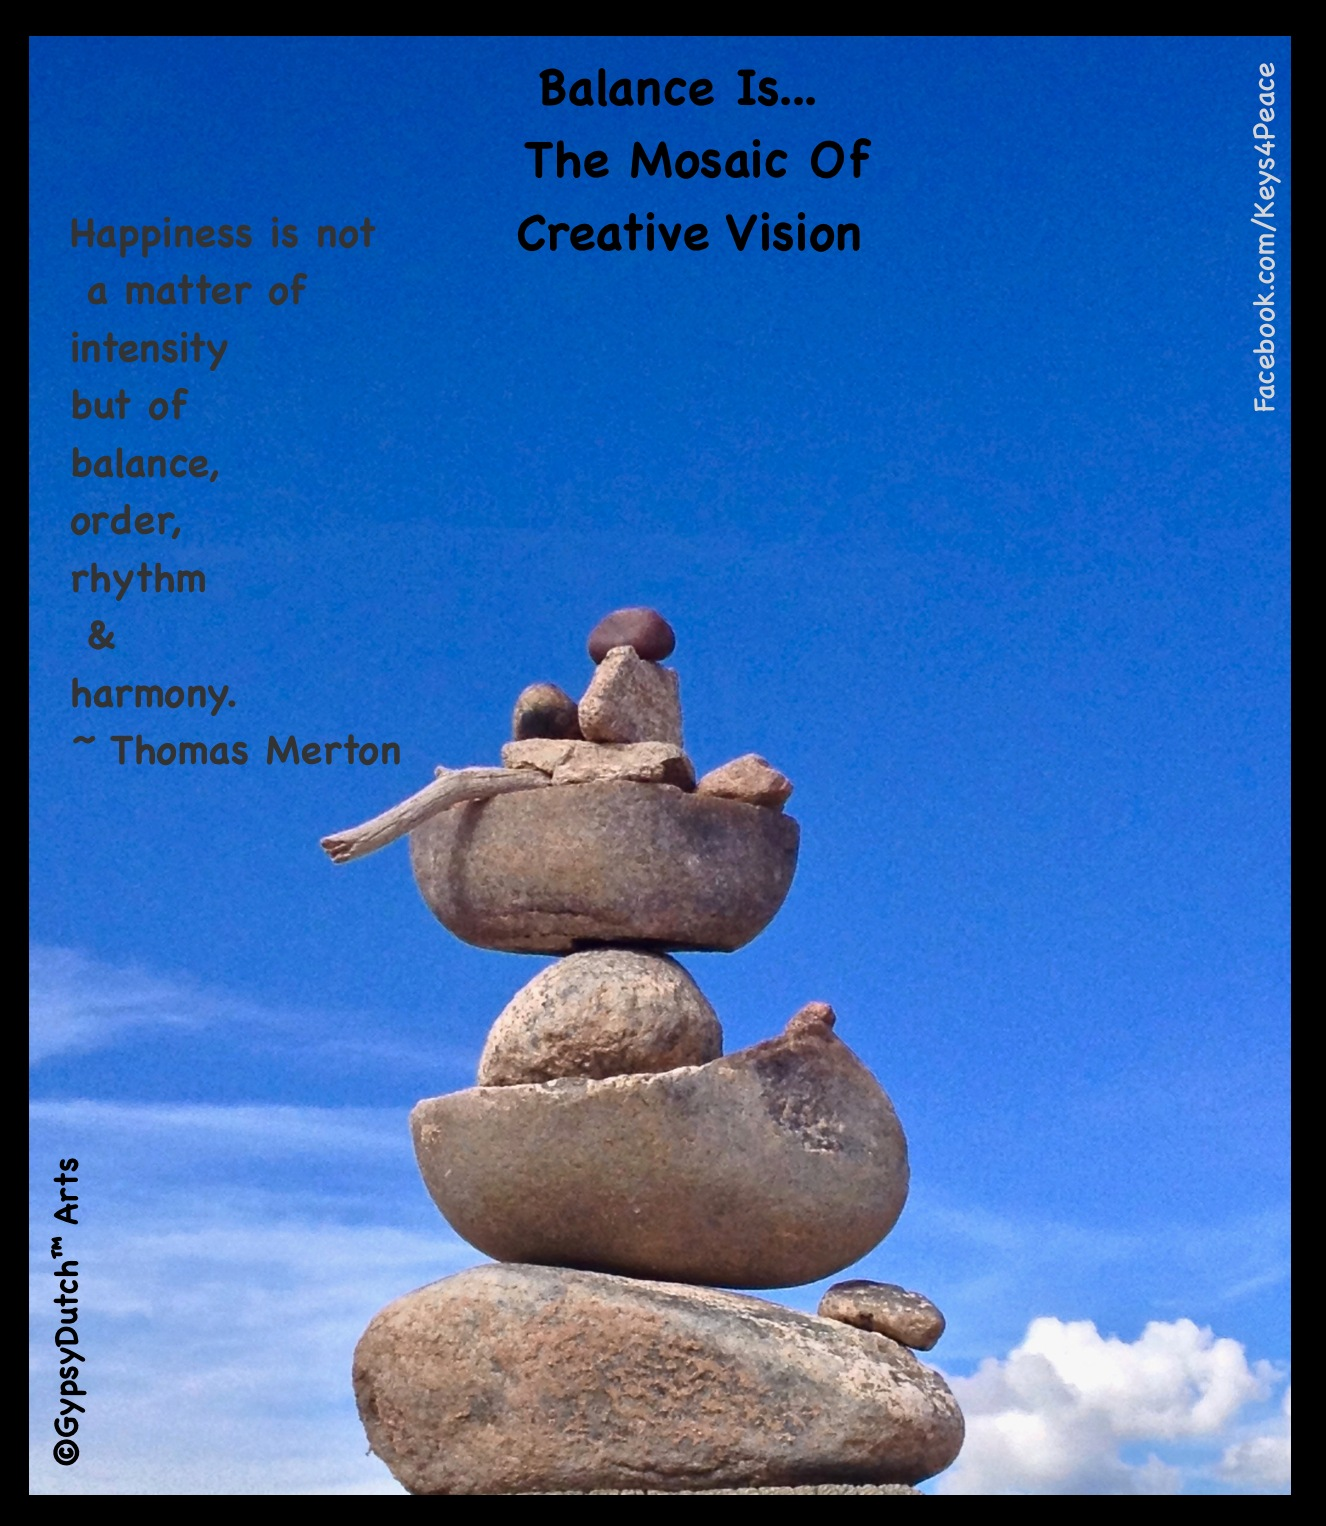 Balance Is...The Mosaic Of Creative Vision by GypsyDutch